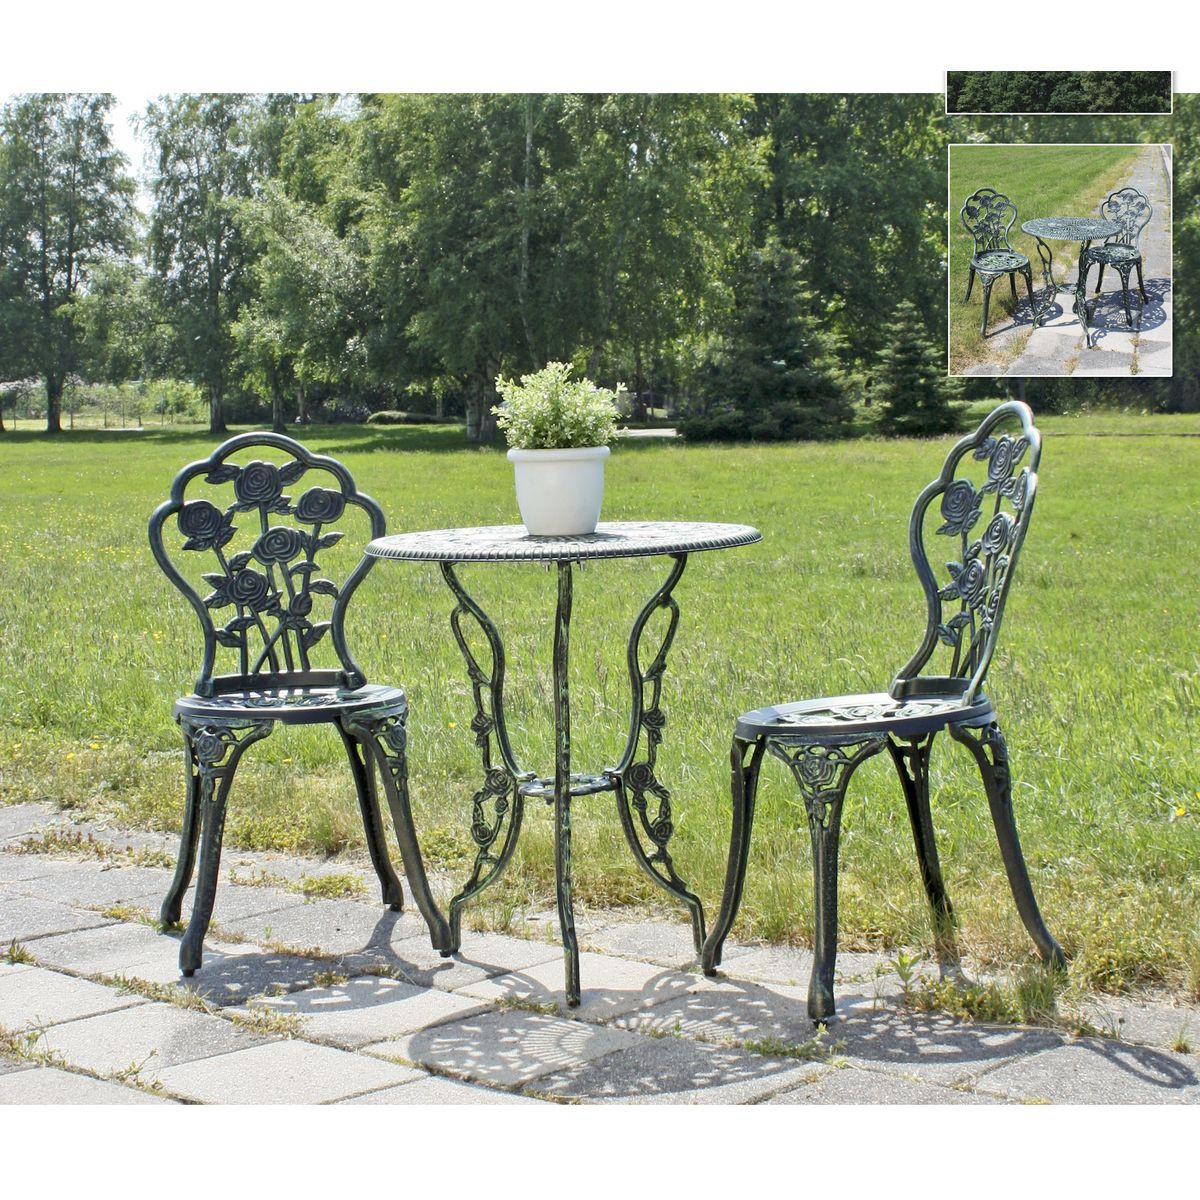 balkonset balkonm bel balkontisch bistroset sitzgruppe gartenset gartenm bel ebay. Black Bedroom Furniture Sets. Home Design Ideas